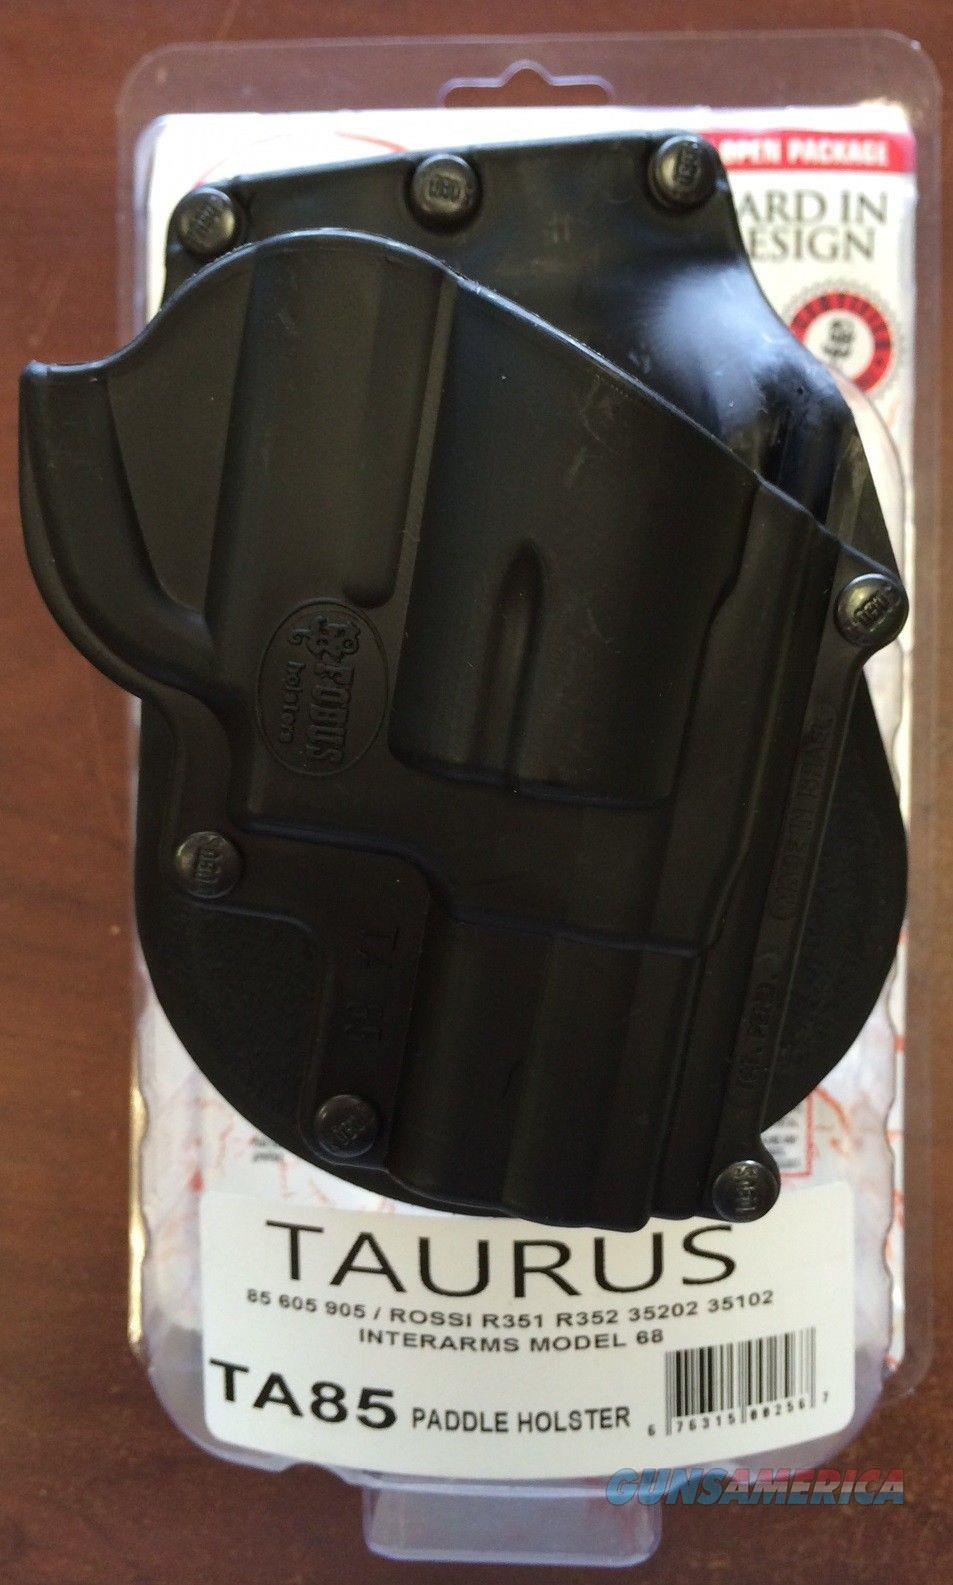 Fobus Paddle Holster Taurus 85/605/905 Rossi R351  Non-Guns > Holsters and Gunleather > Revolver